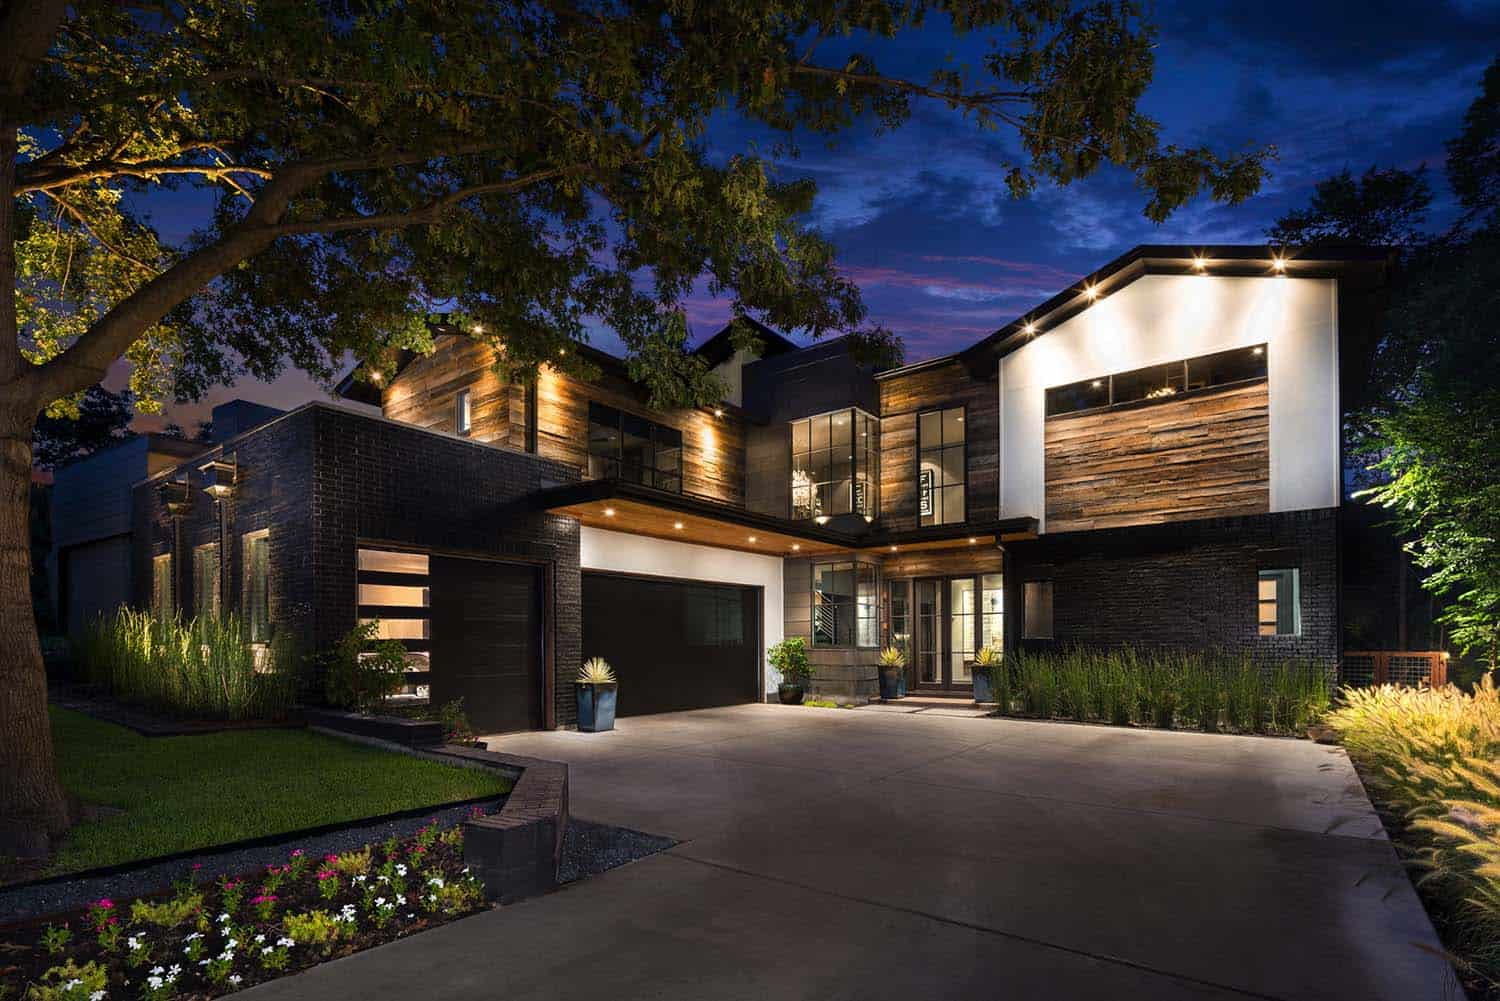 Urban Contemporary Home-Rosewood Custom Builders-01-1 Kindesign